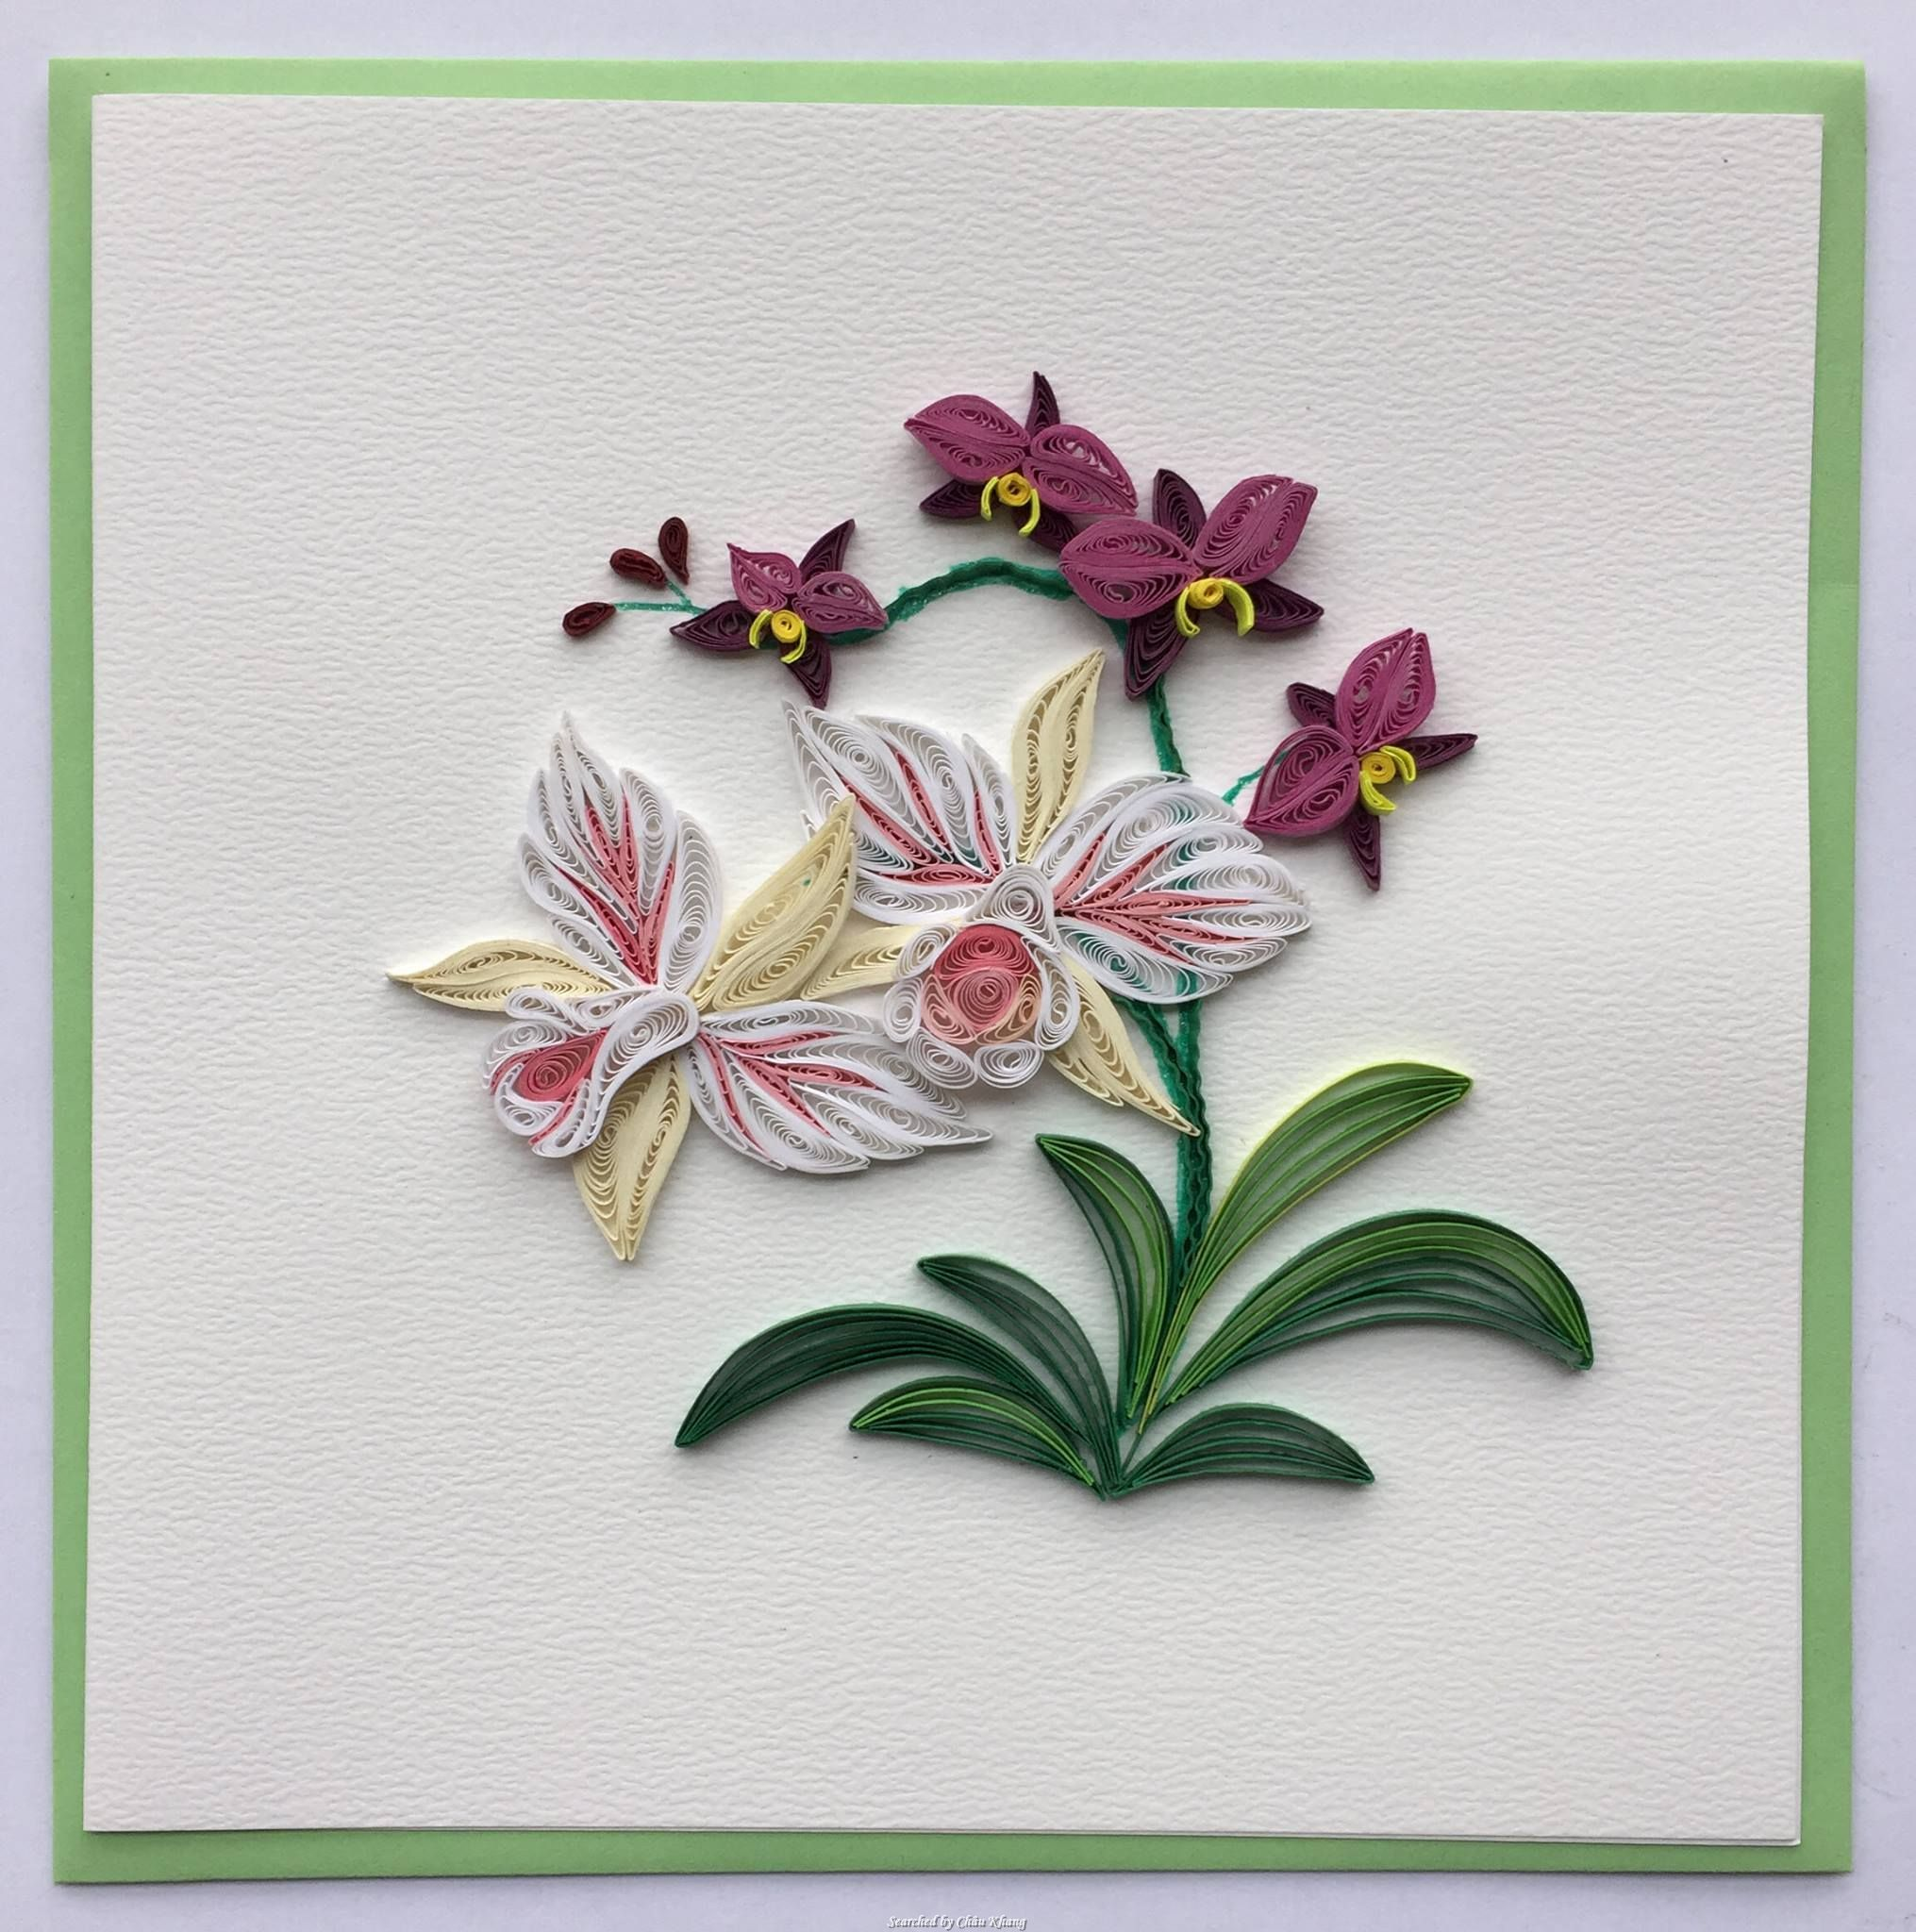 Lan Quilling Quilled Flower Cards Searched By Chau Khang